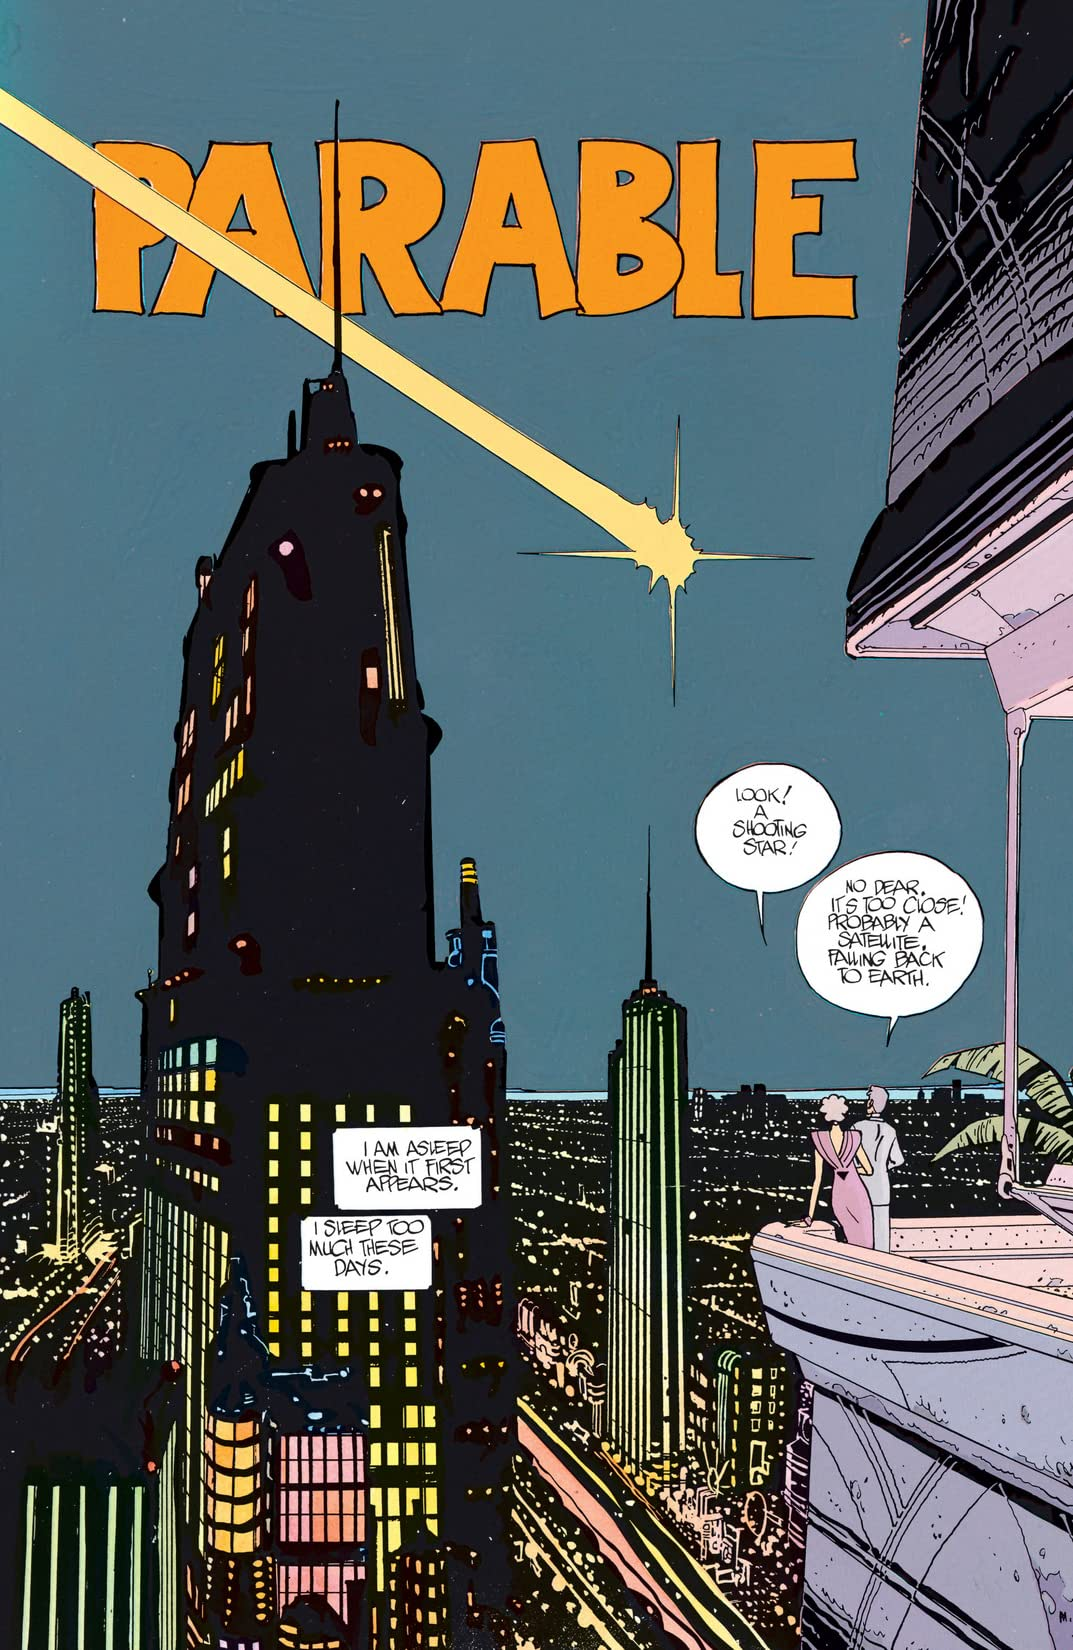 Silver Surfer: Parable #1